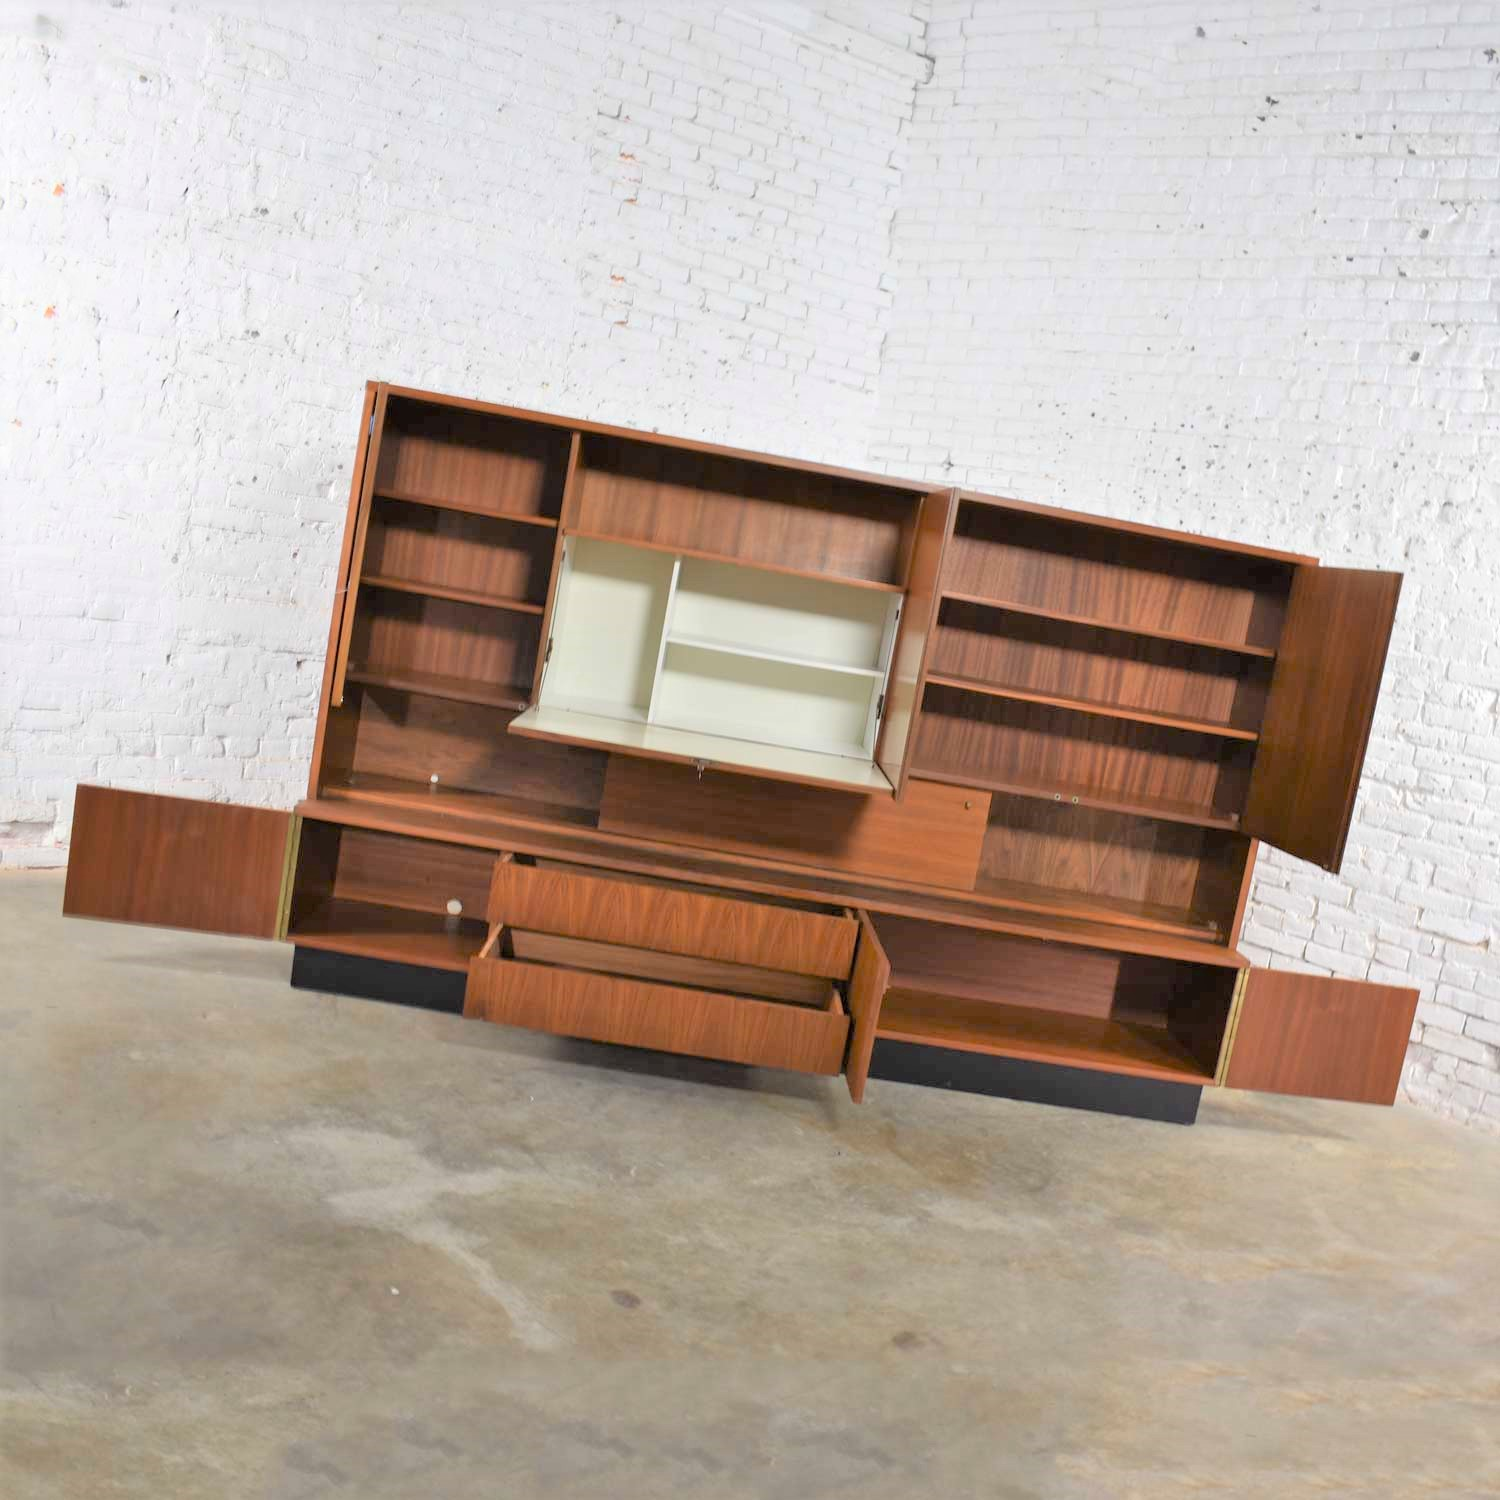 Image of: Teak Mid Century Modern Wall Storage Bookcase Cabinet With Drop Front Desk Warehouse 414